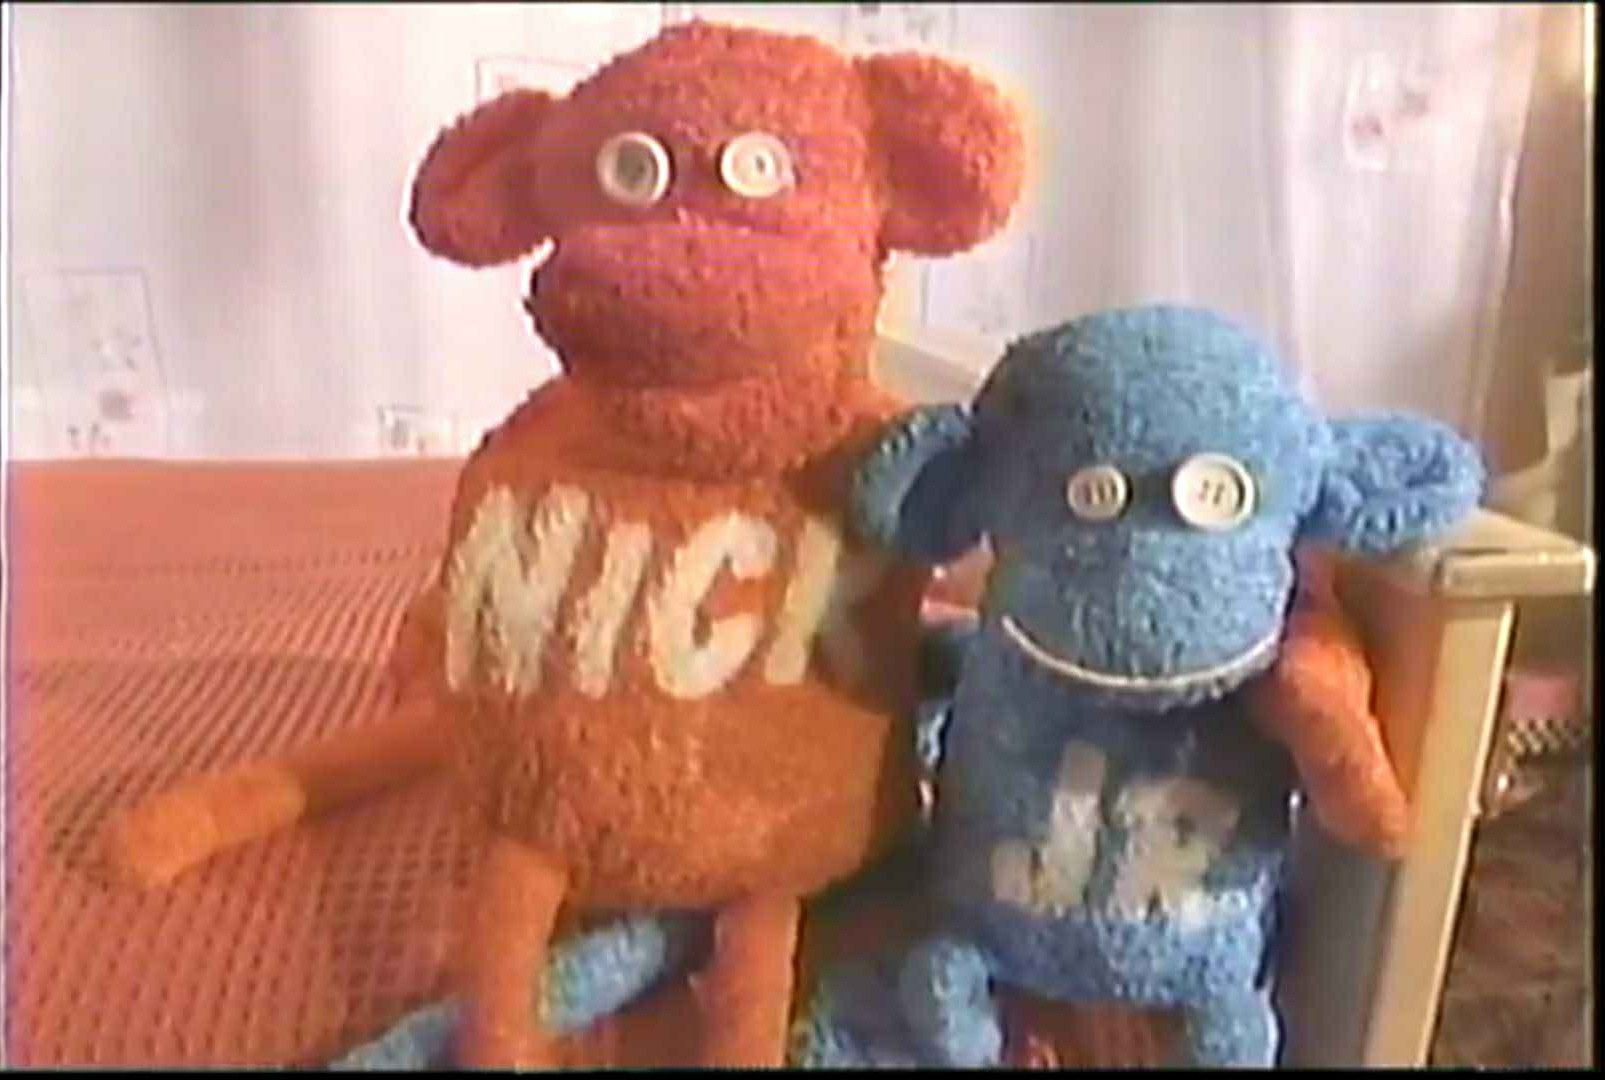 Nick Jr Kids Bumper (2000-2004)